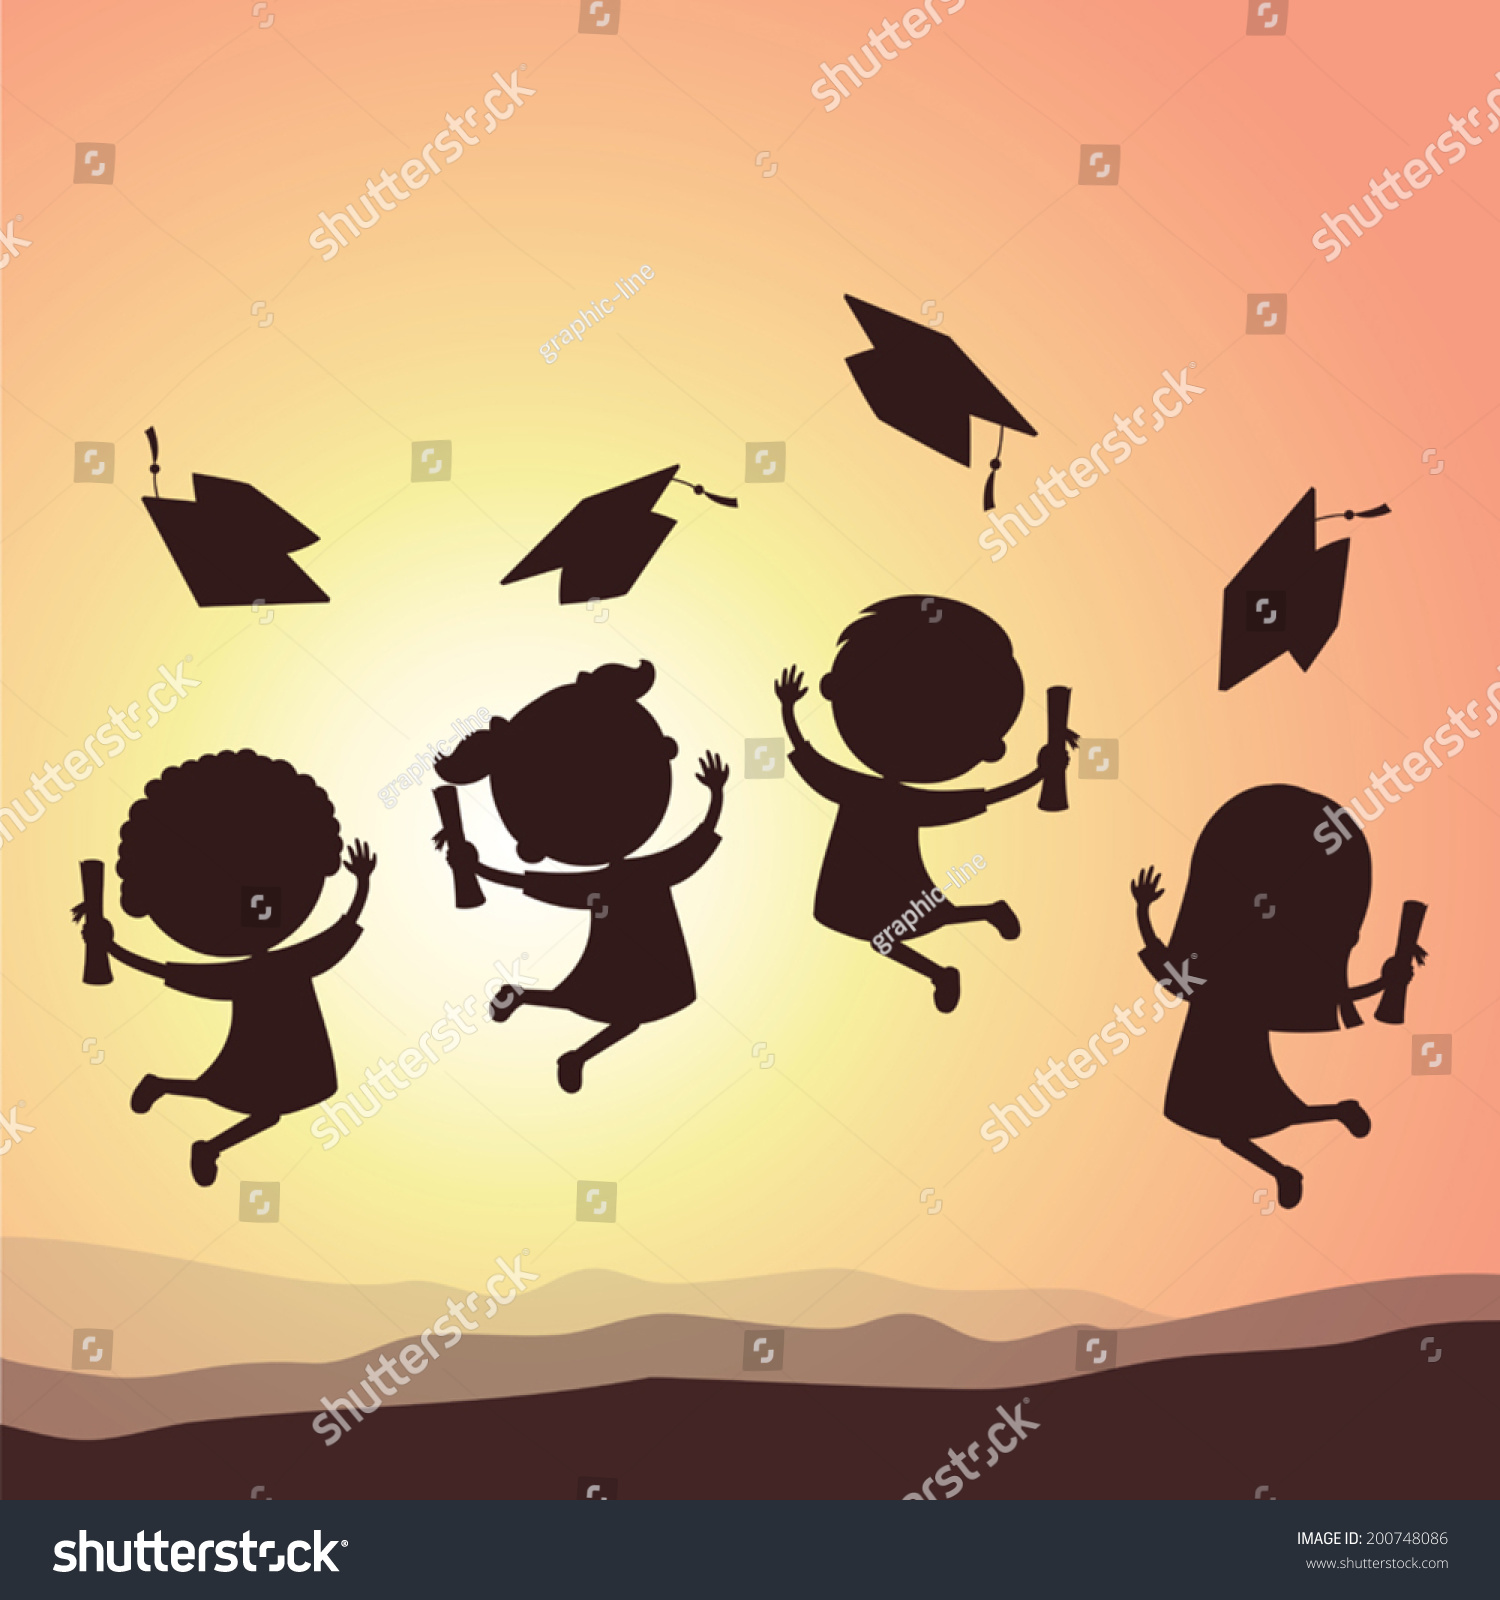 graduation kids silhouette school kids jumping stock